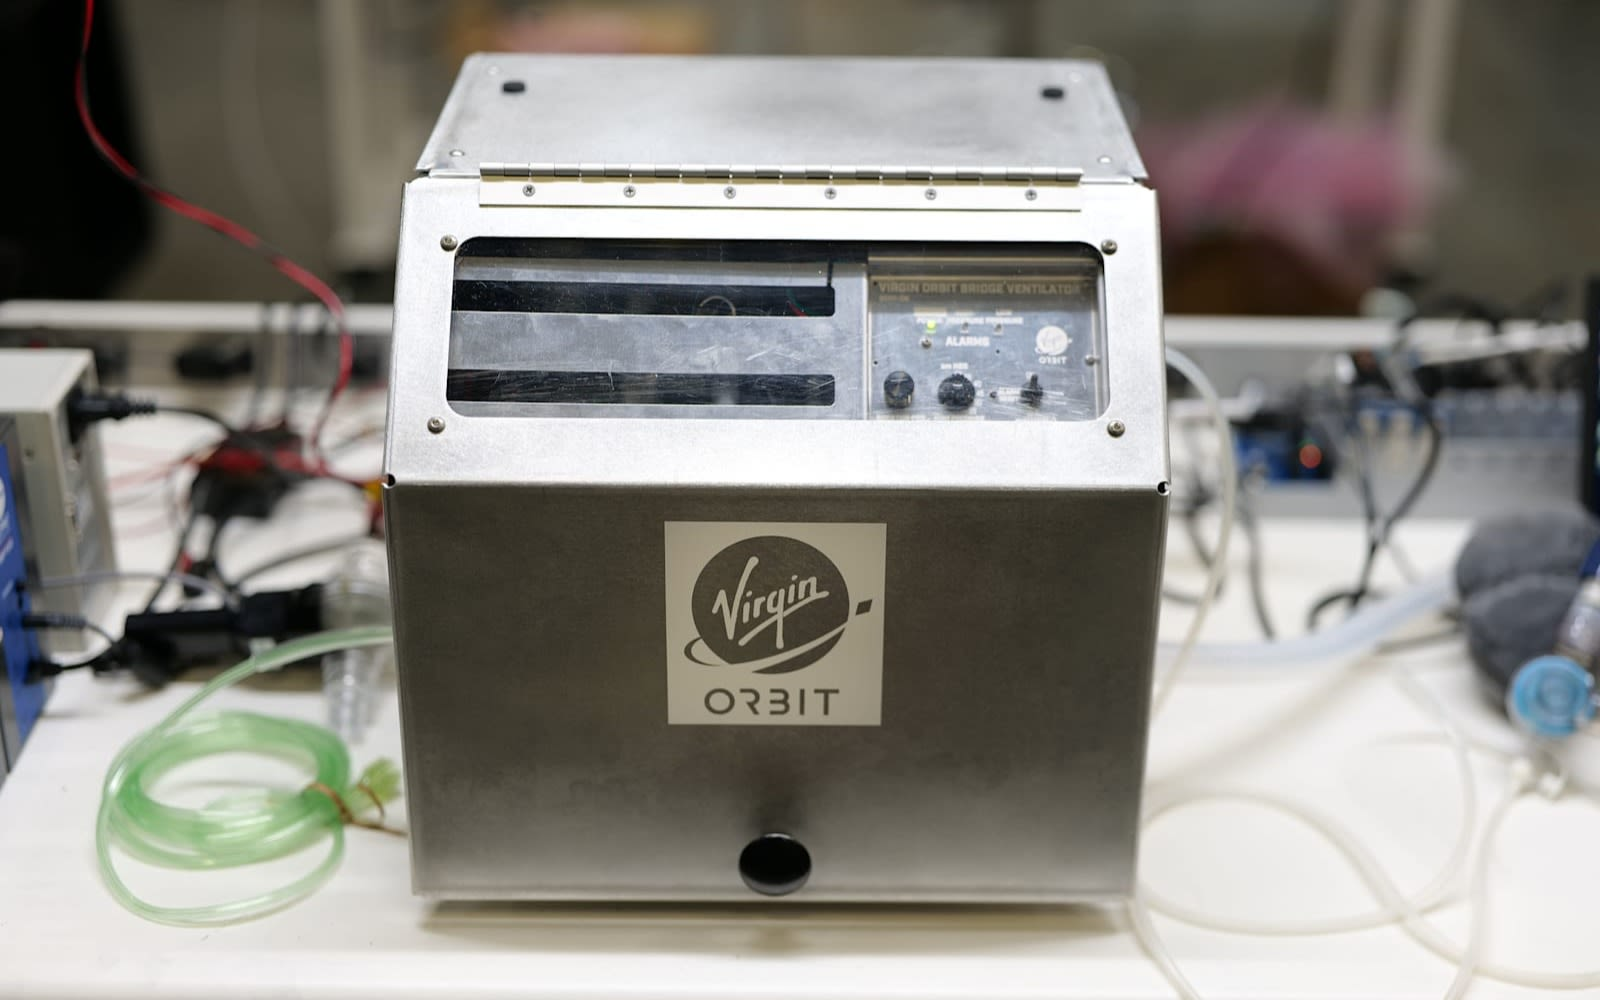 Silver cased ventilator on work bench with Virgin Orbit logo